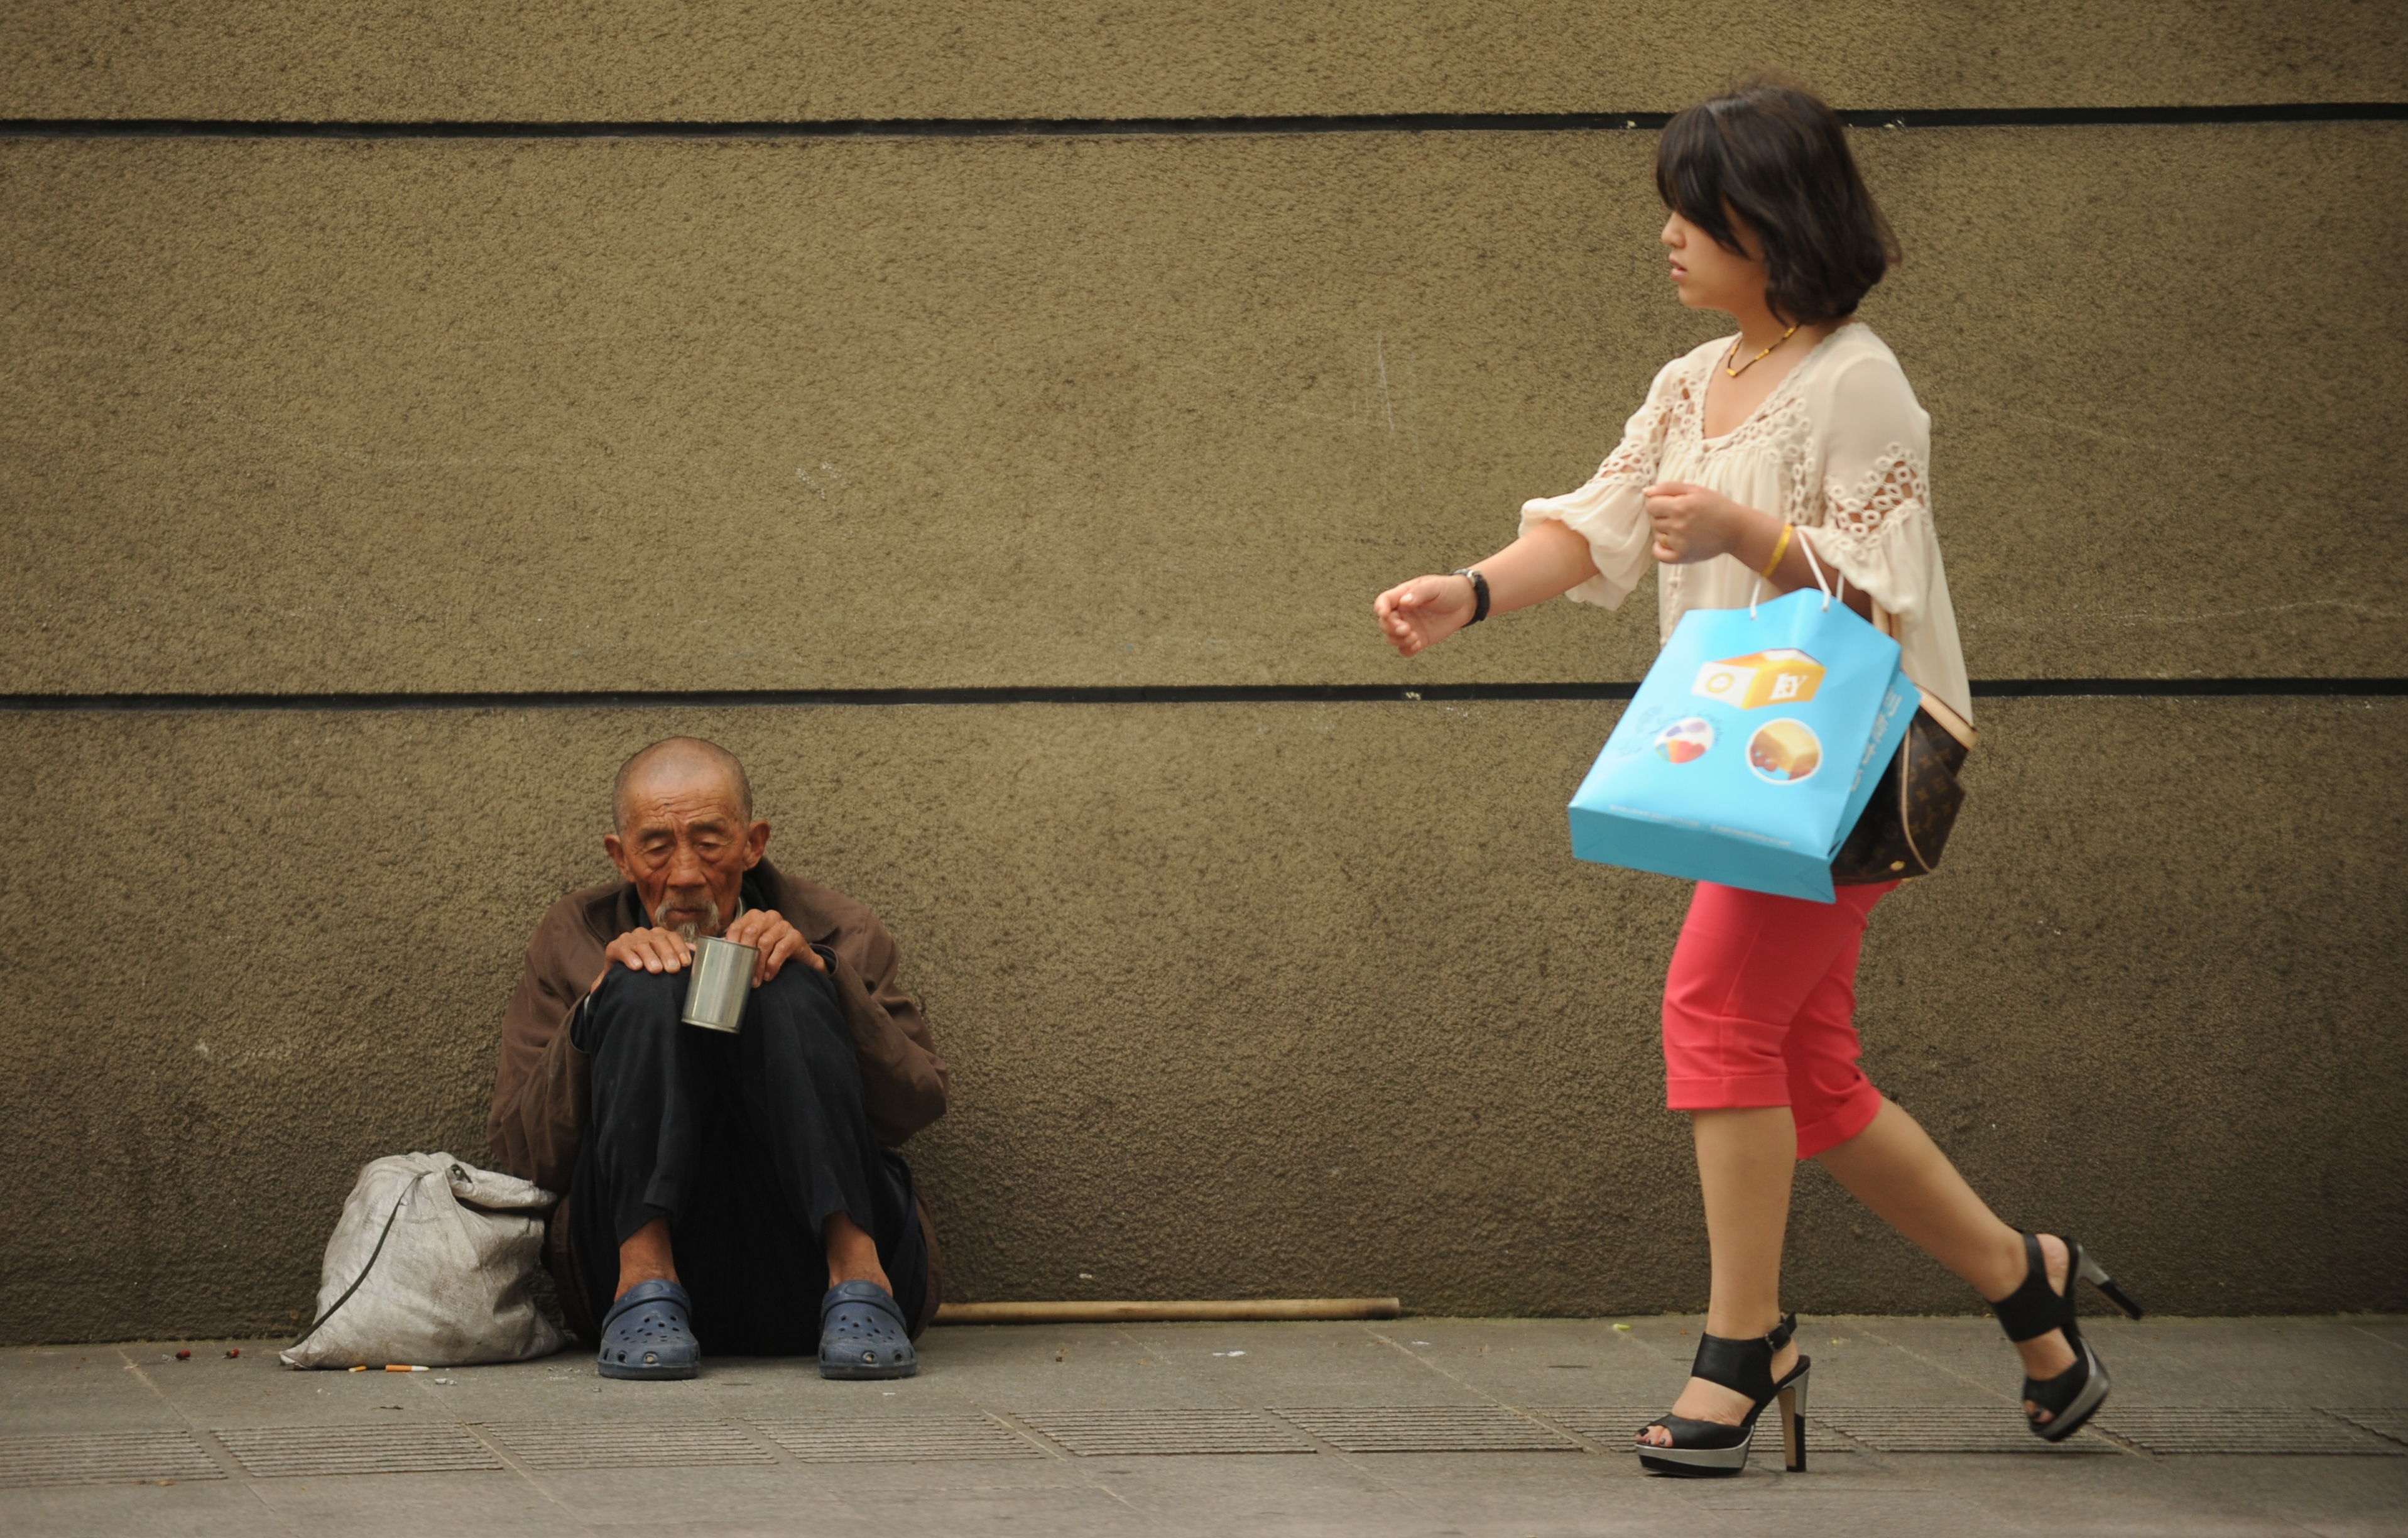 A man begs on a street as a woman passes